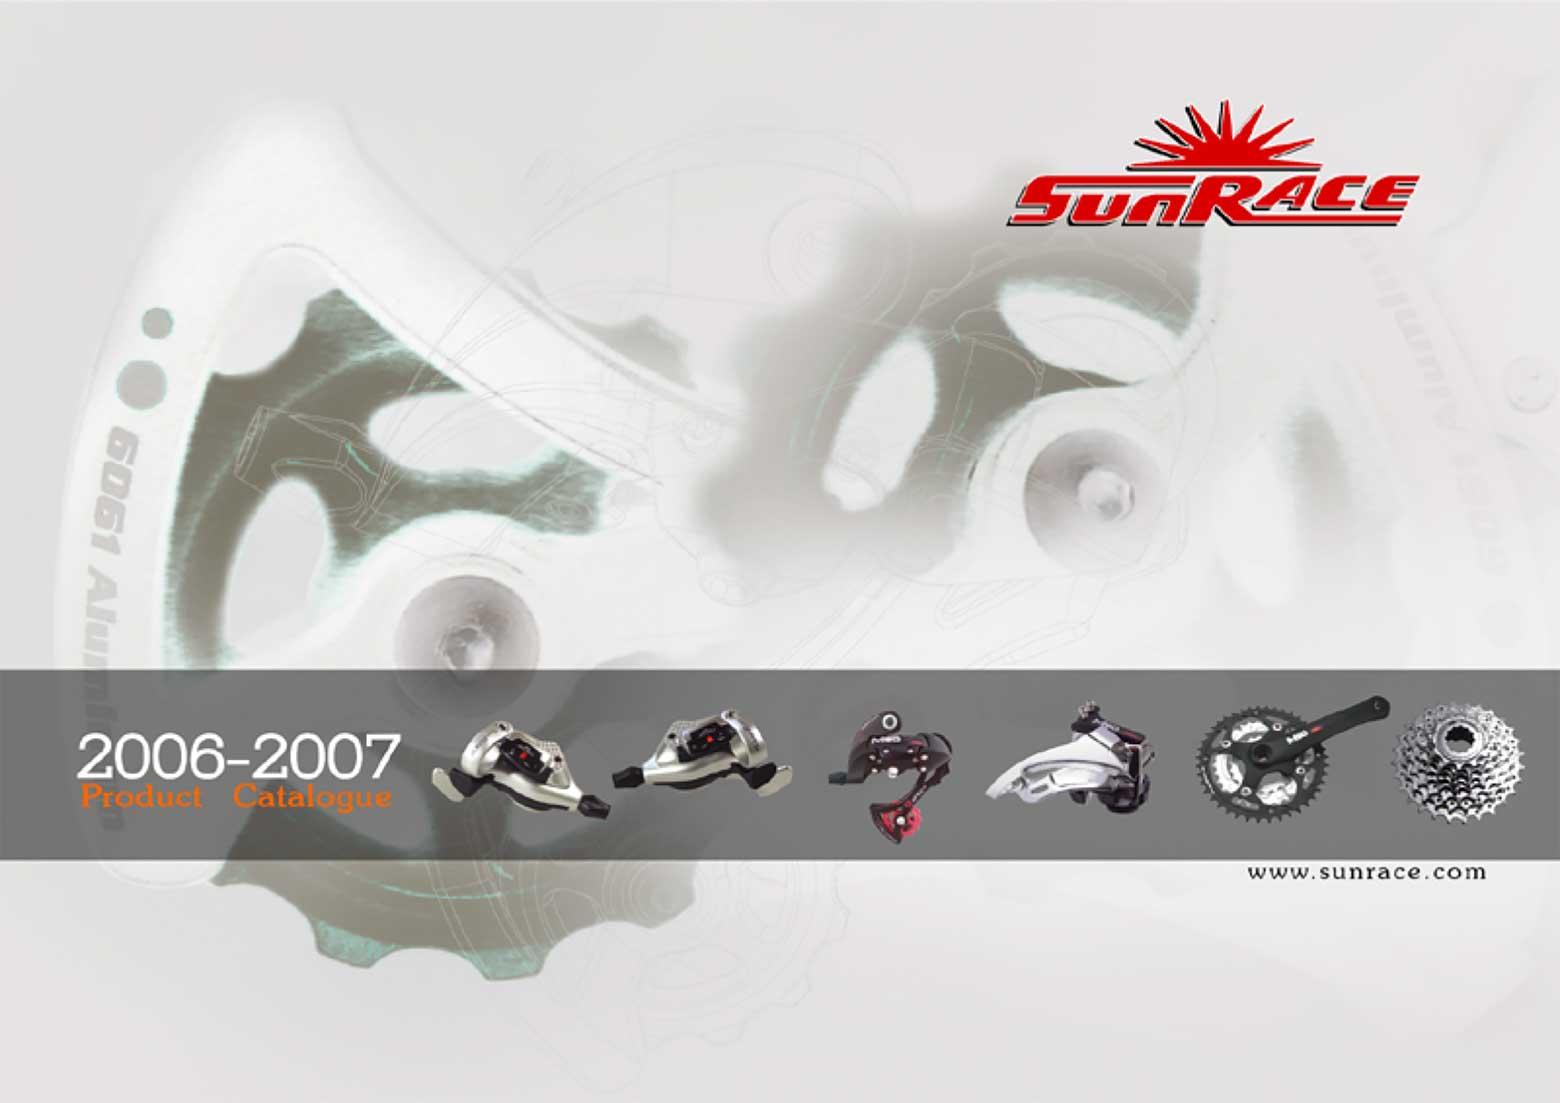 SunRace Product Catalogue 2006 2007